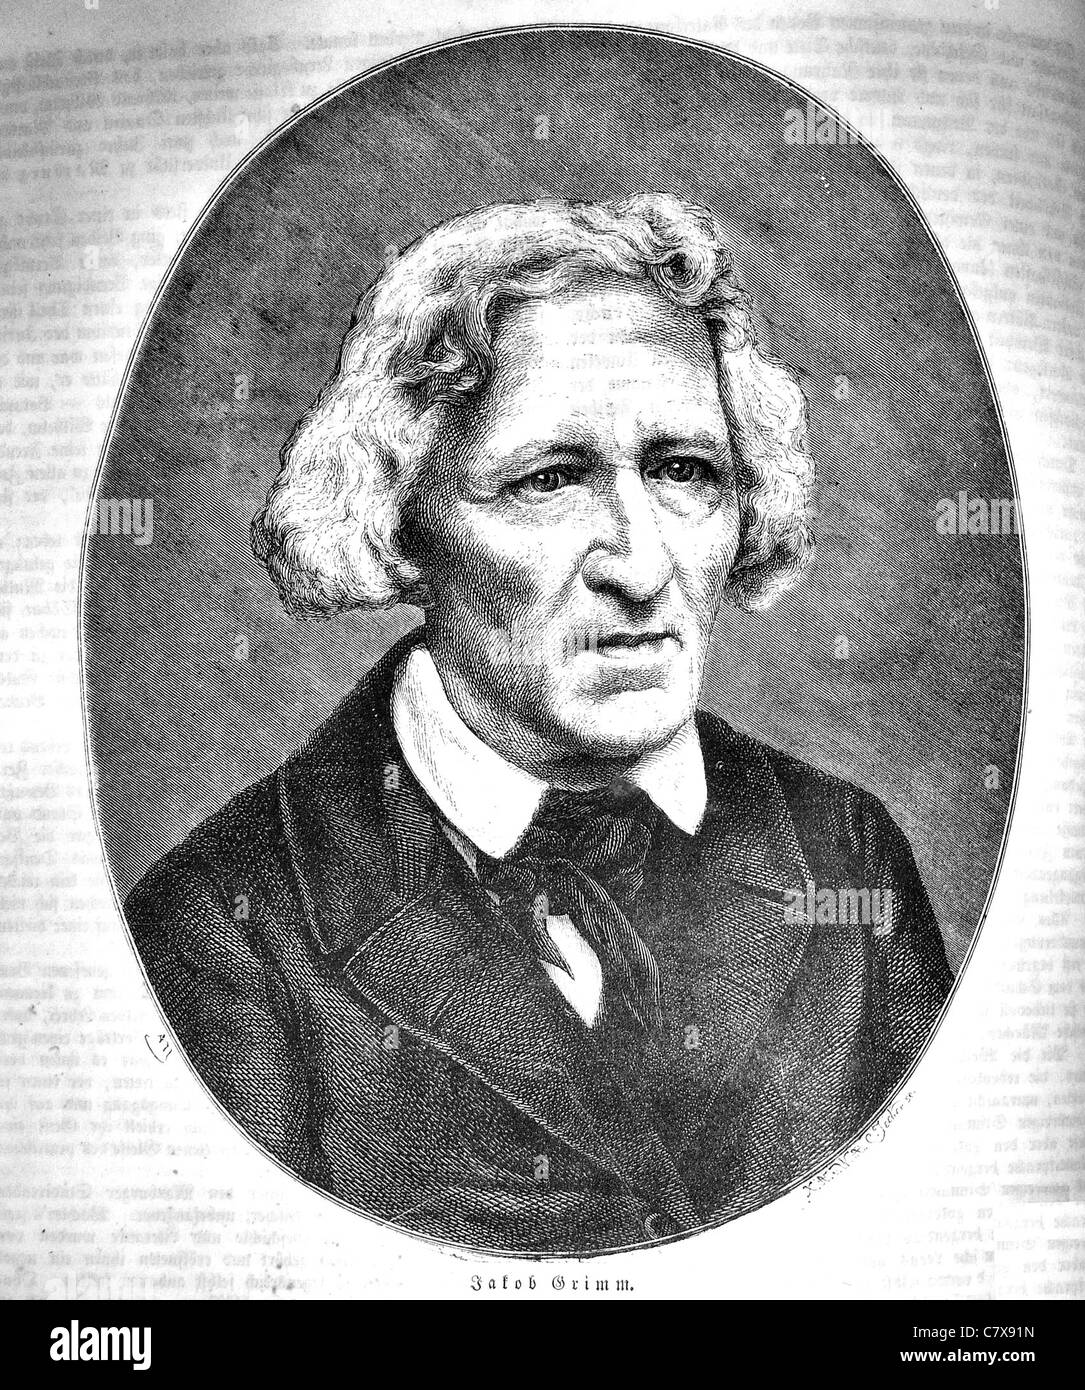 JACOB GRIMM (1785-1863) German philologist and with his brother Wilhelm the author of  Grimms Fairy Tales - Stock Image